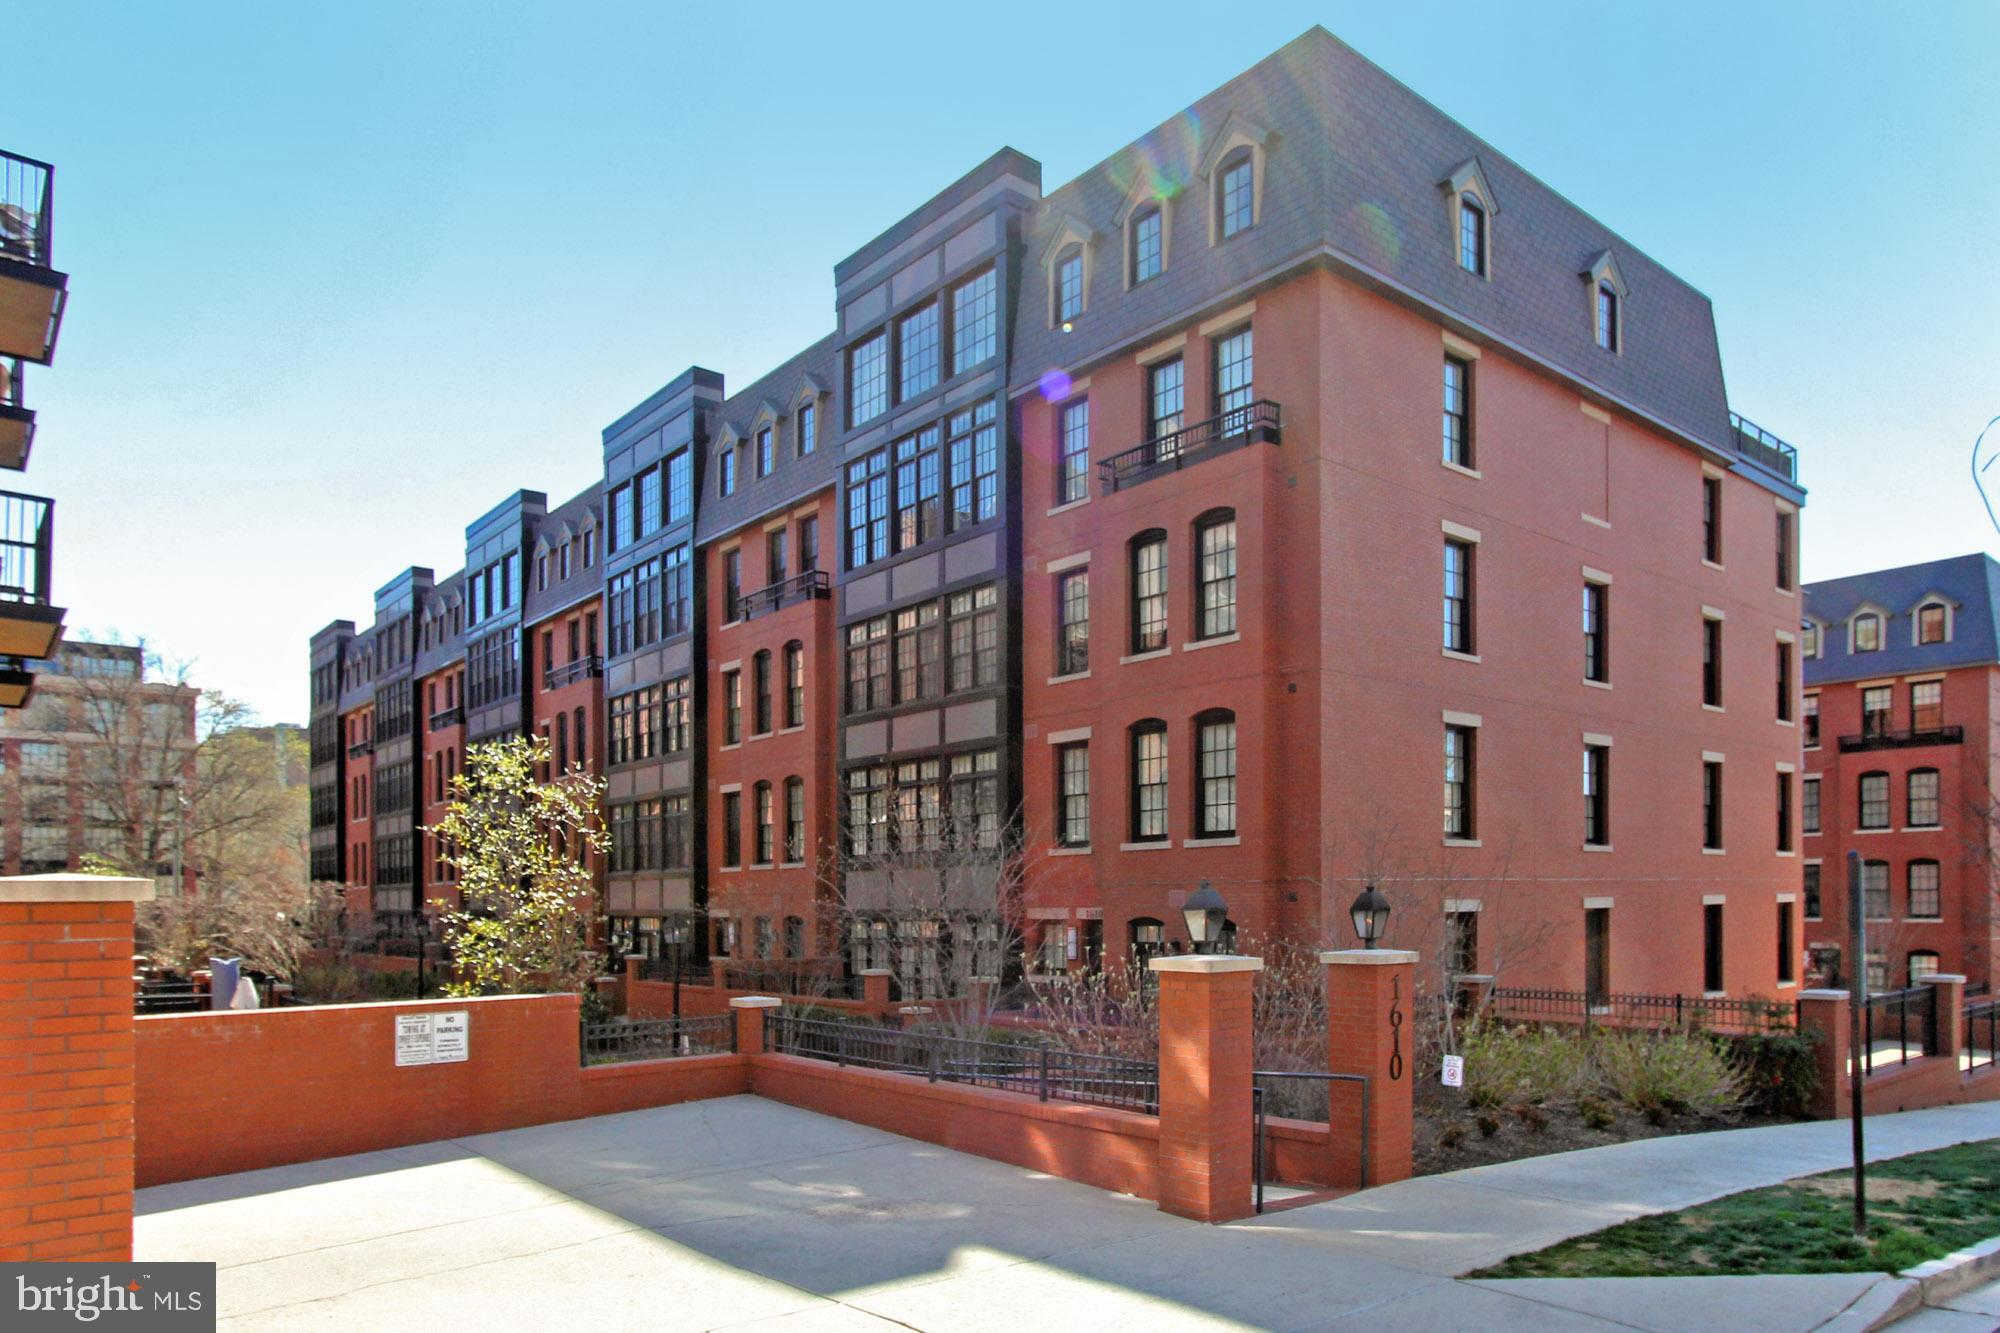 1610 N Queen Street #224, Arlington, VA 22209 now has a new price of $4,200!